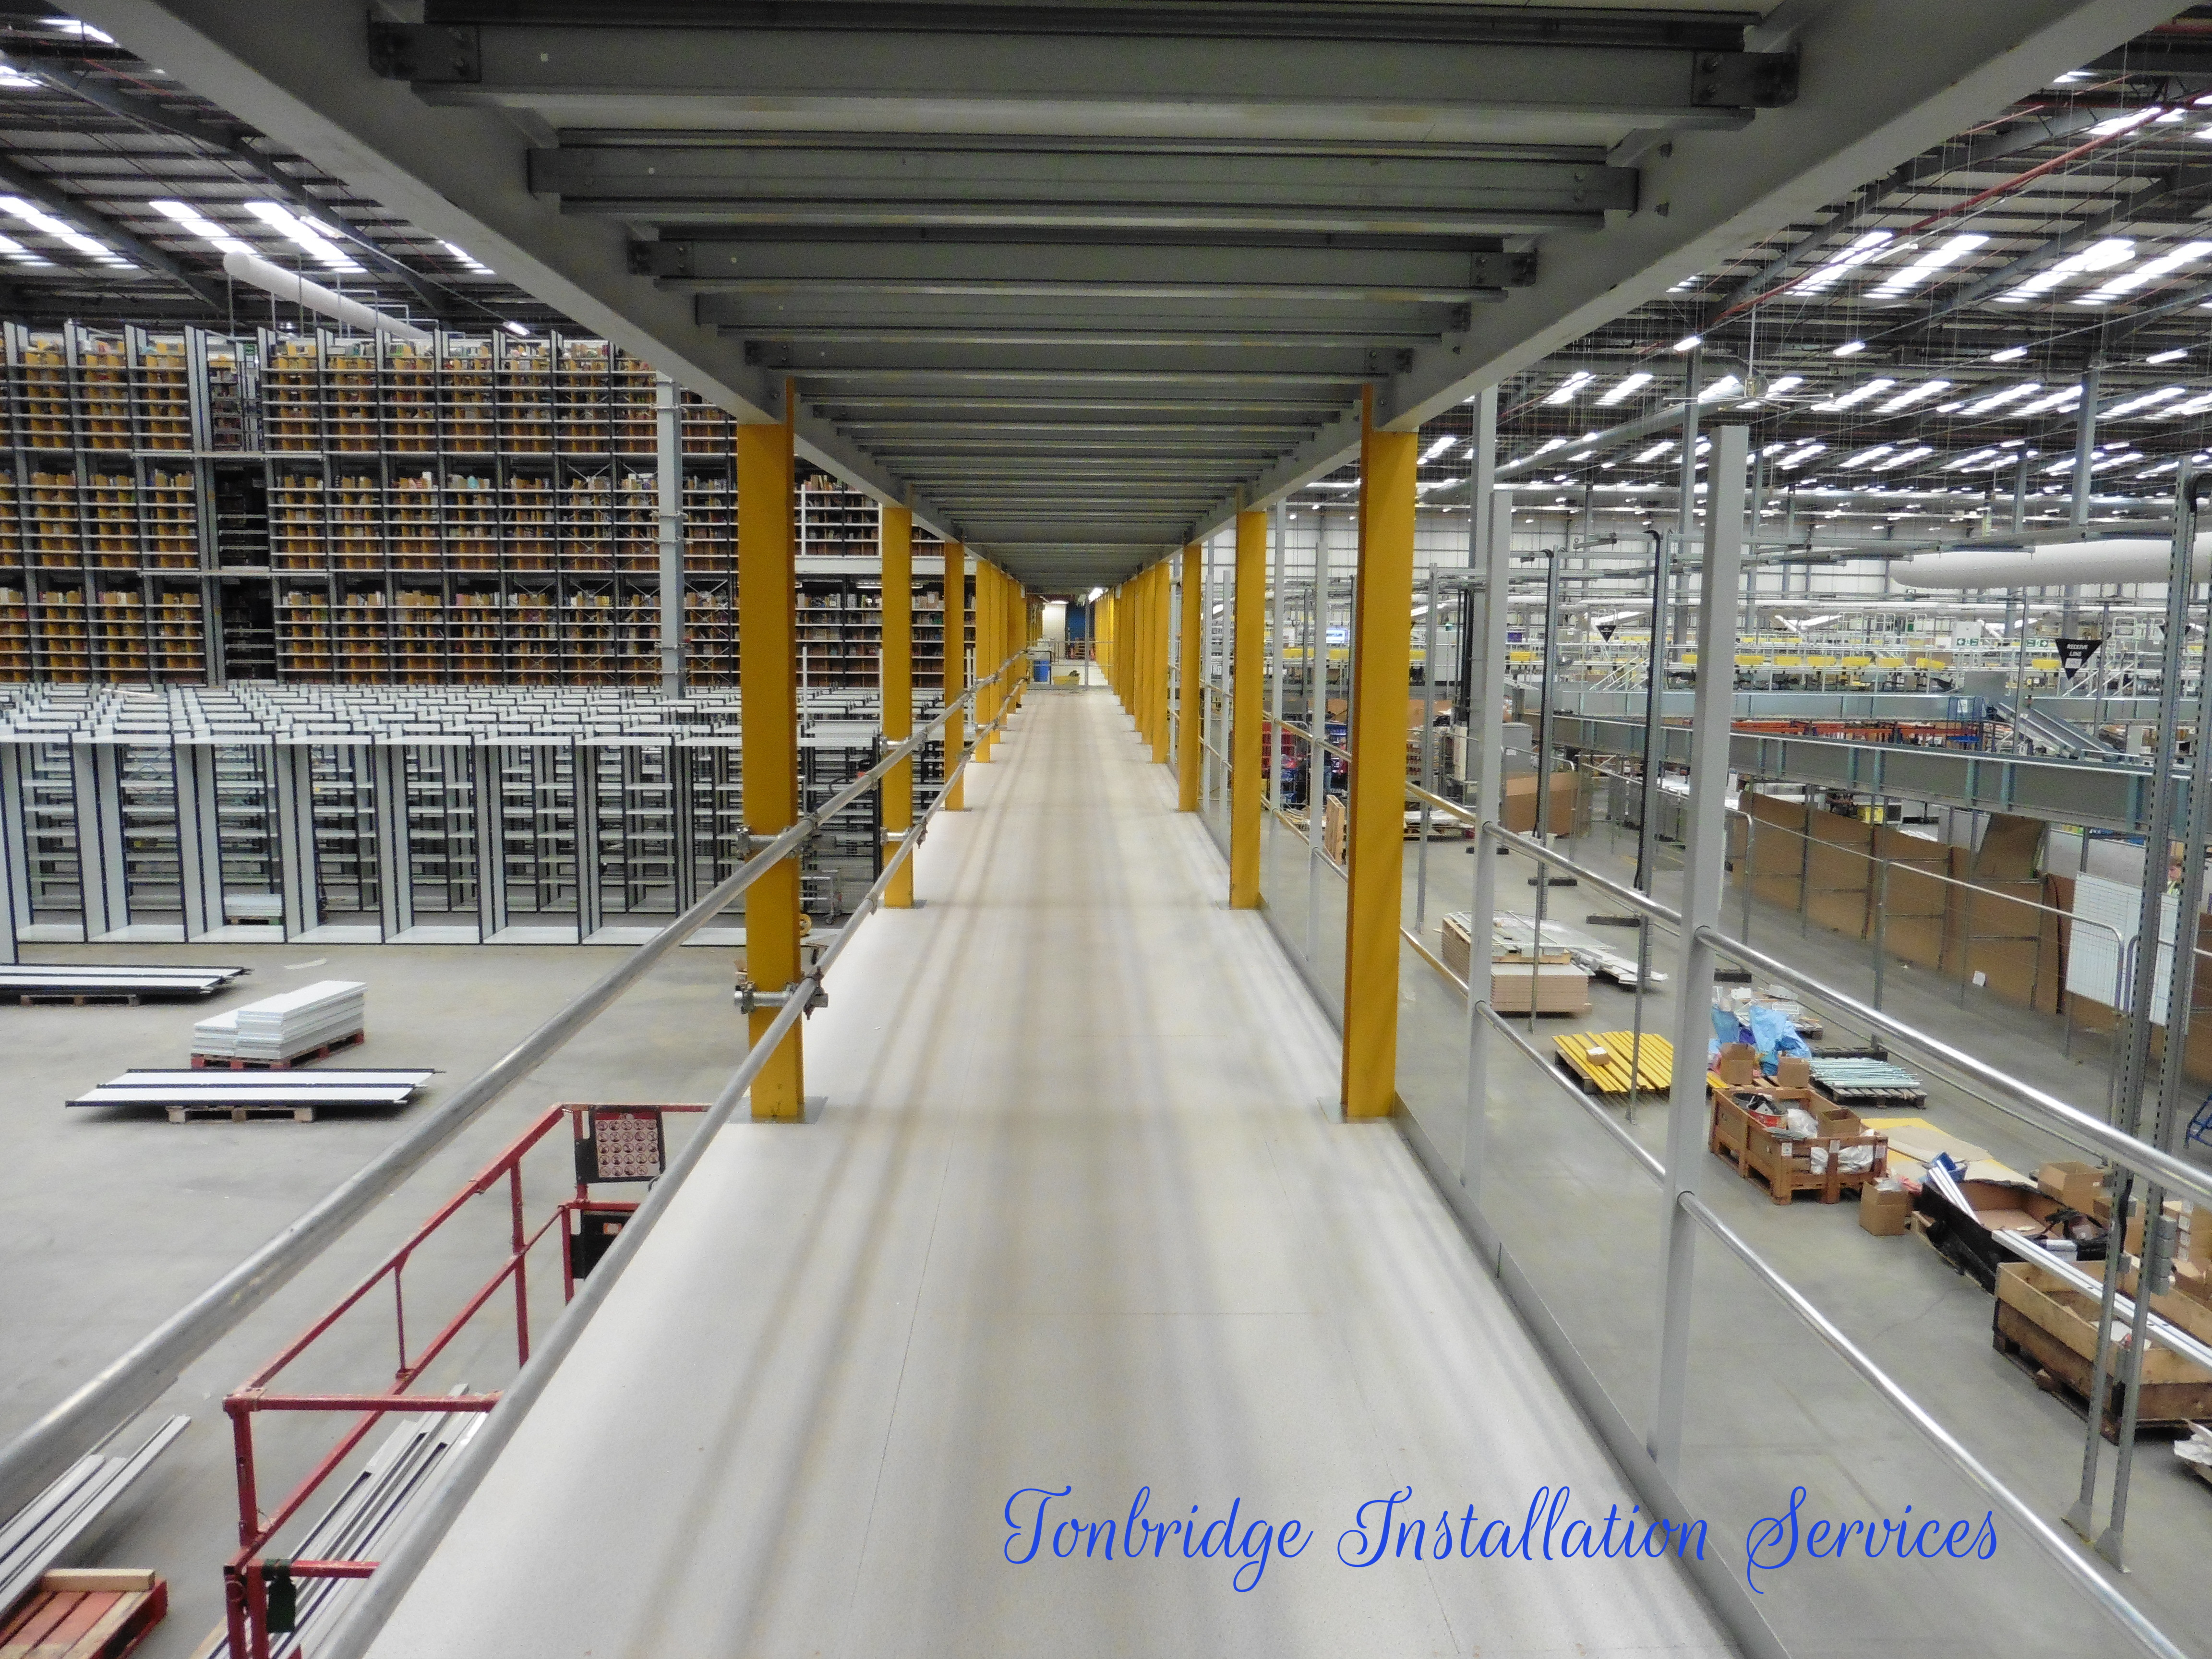 Racking Installation Mezzanine Floors - Tonbridge Installation Services